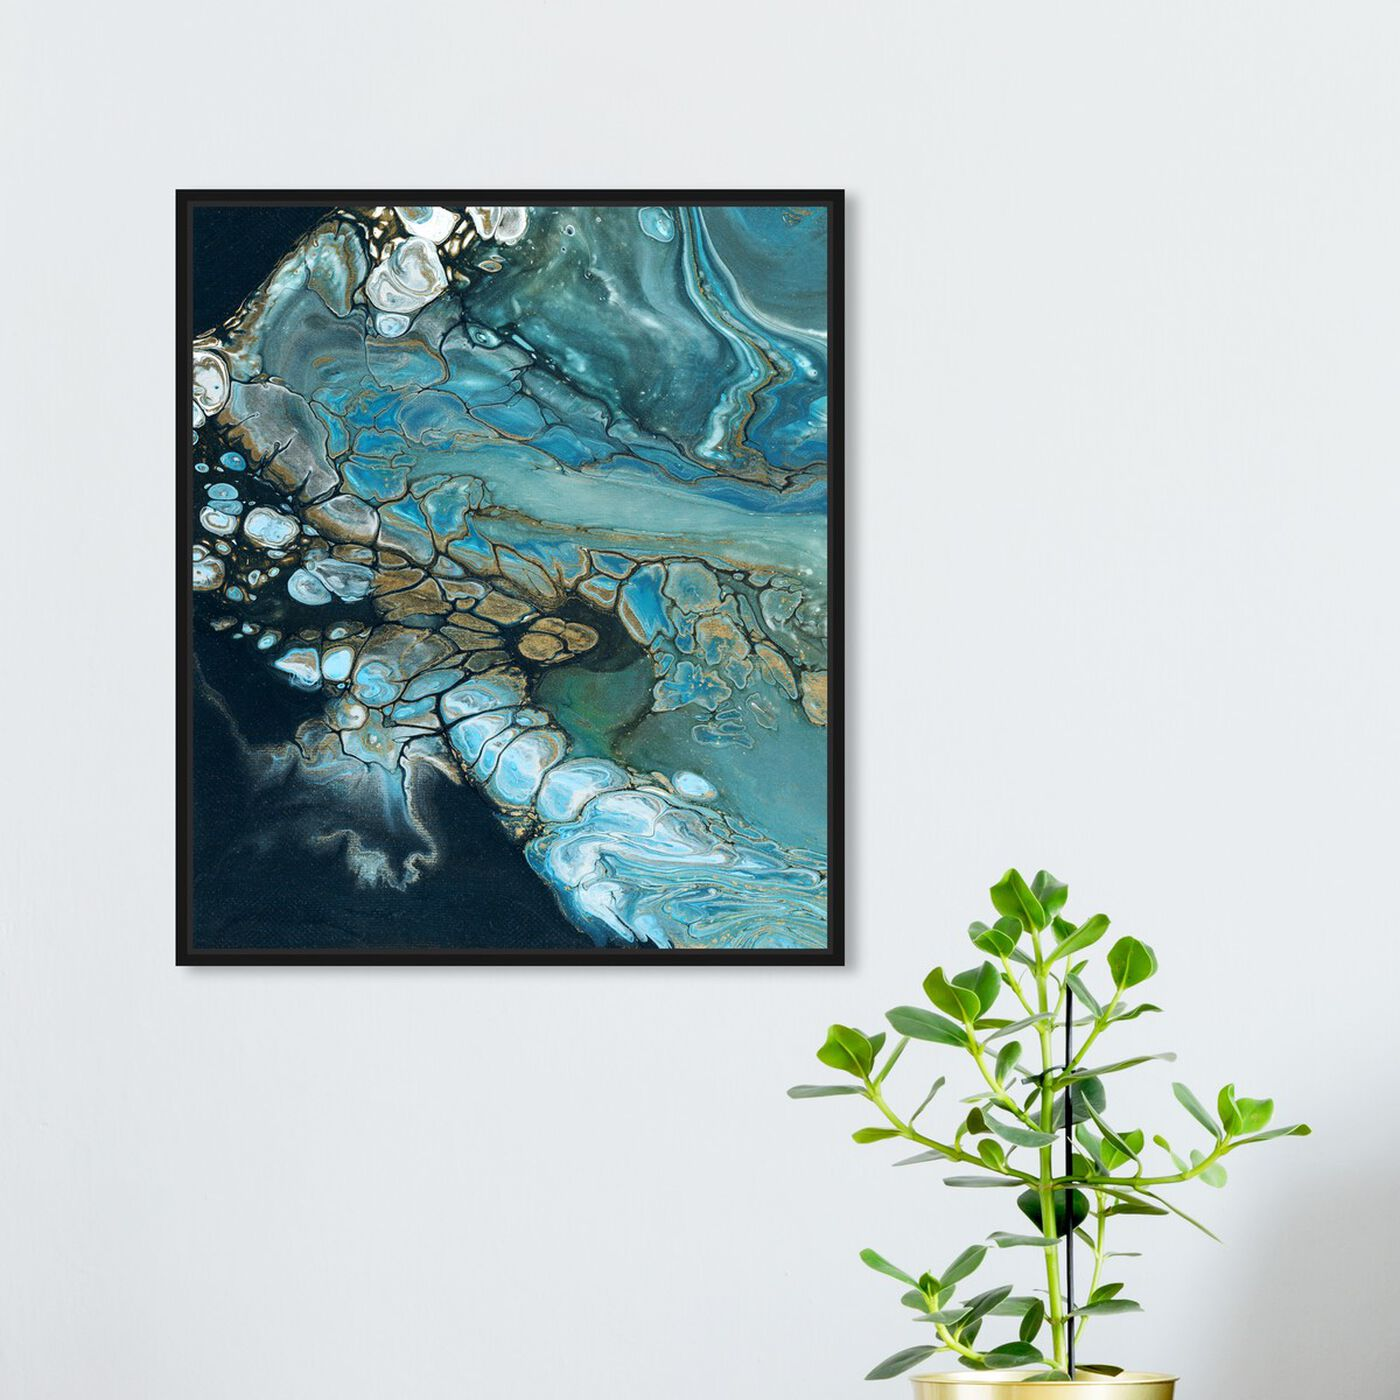 Hanging view of Inlet featuring abstract and crystals art.